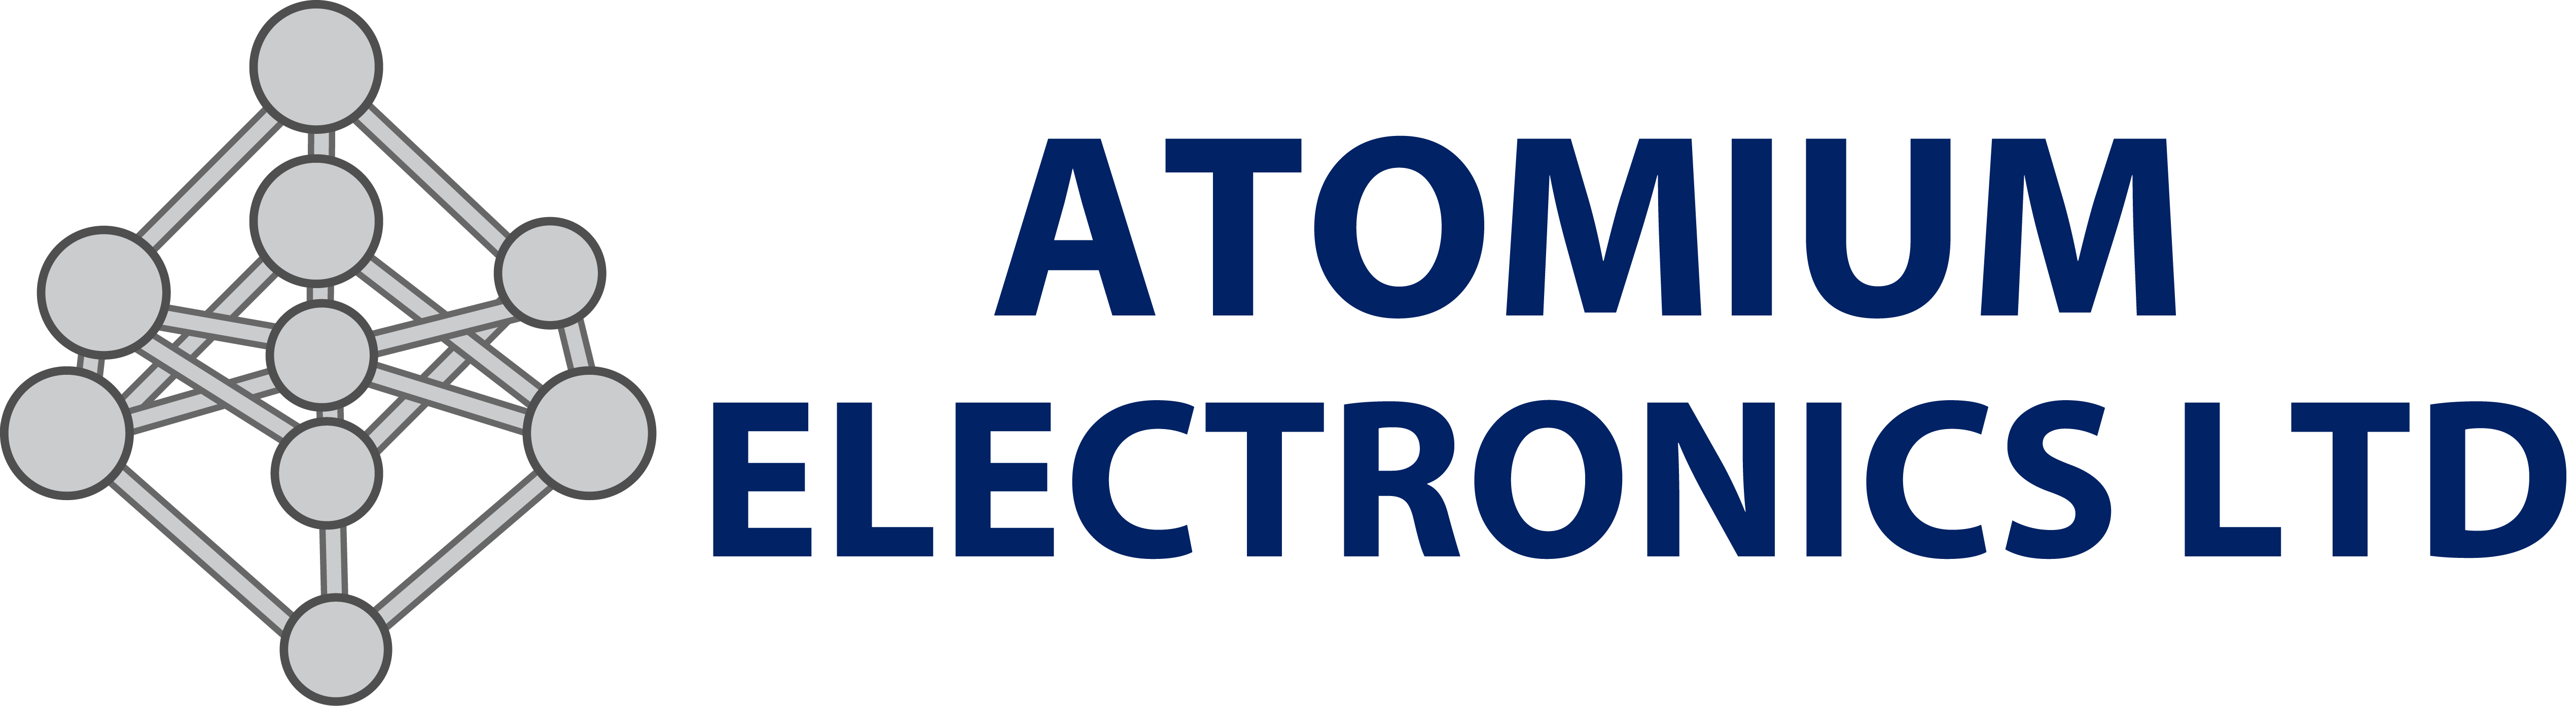 Appliance repairs by Atomium Electronics Ltd in Newcastle, Staffordshire